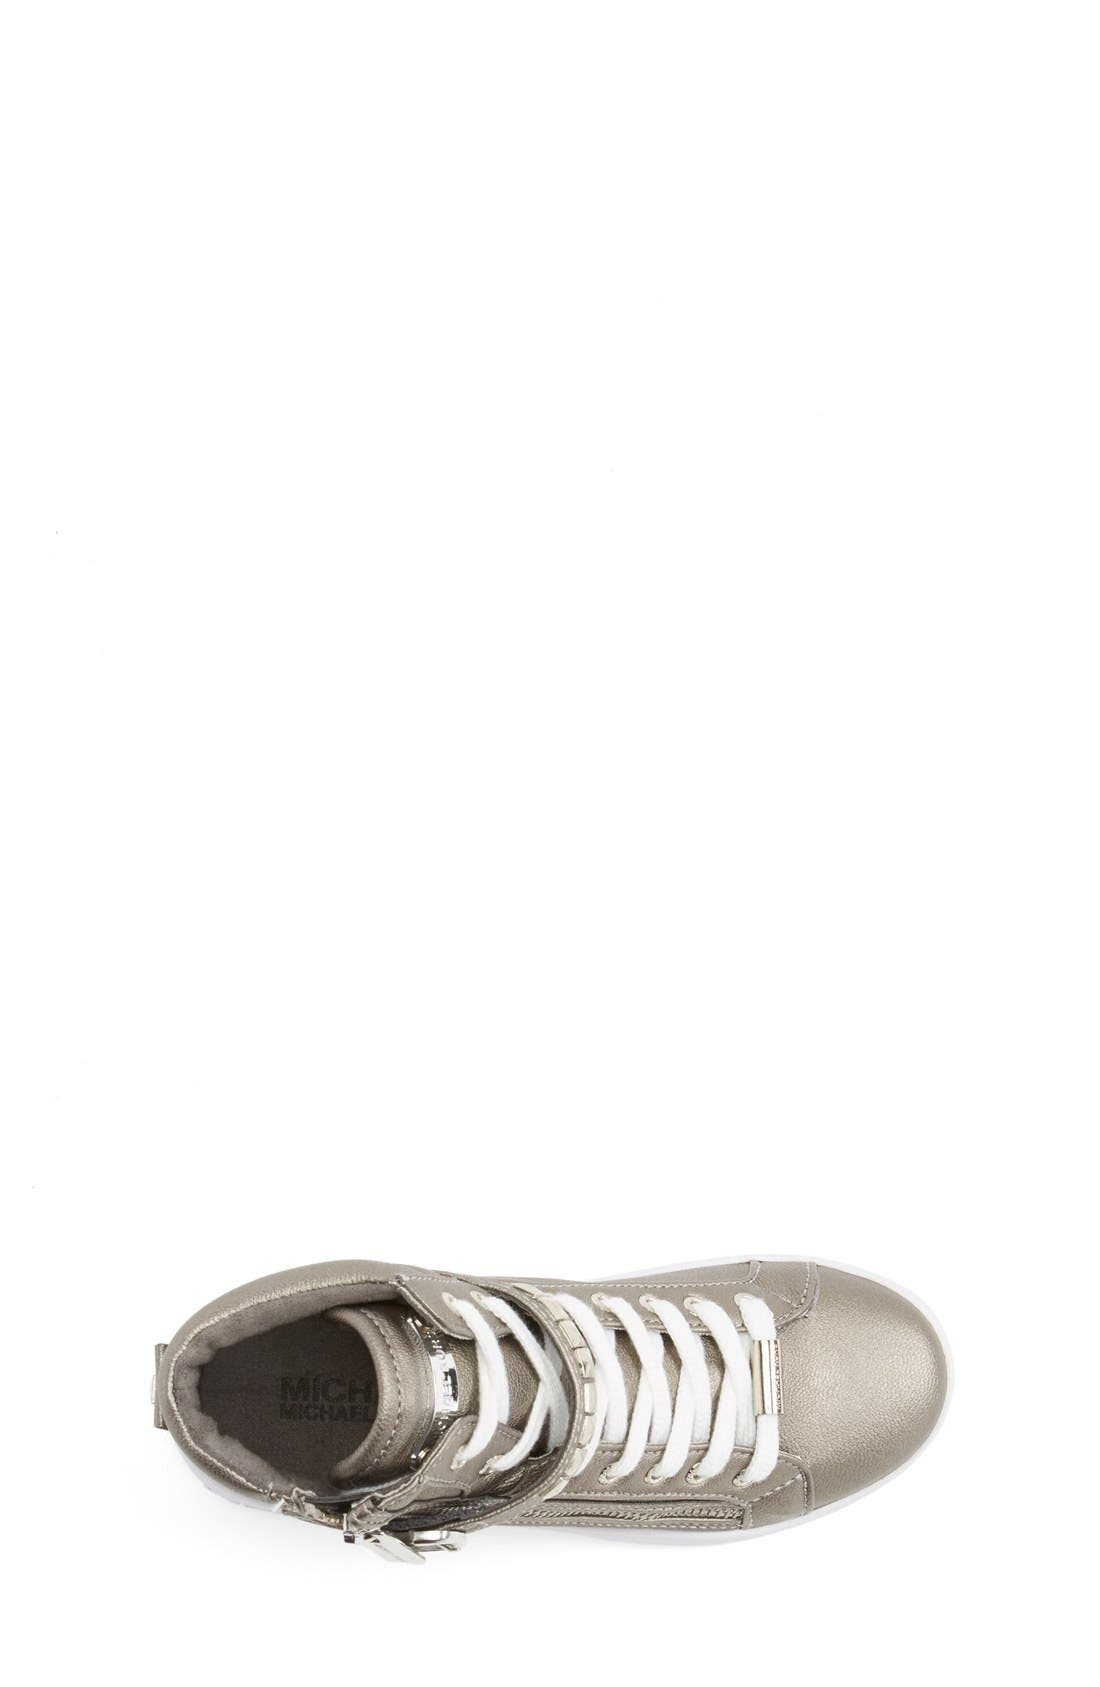 'Ivy Rory' High Top Sneaker,                             Alternate thumbnail 10, color,